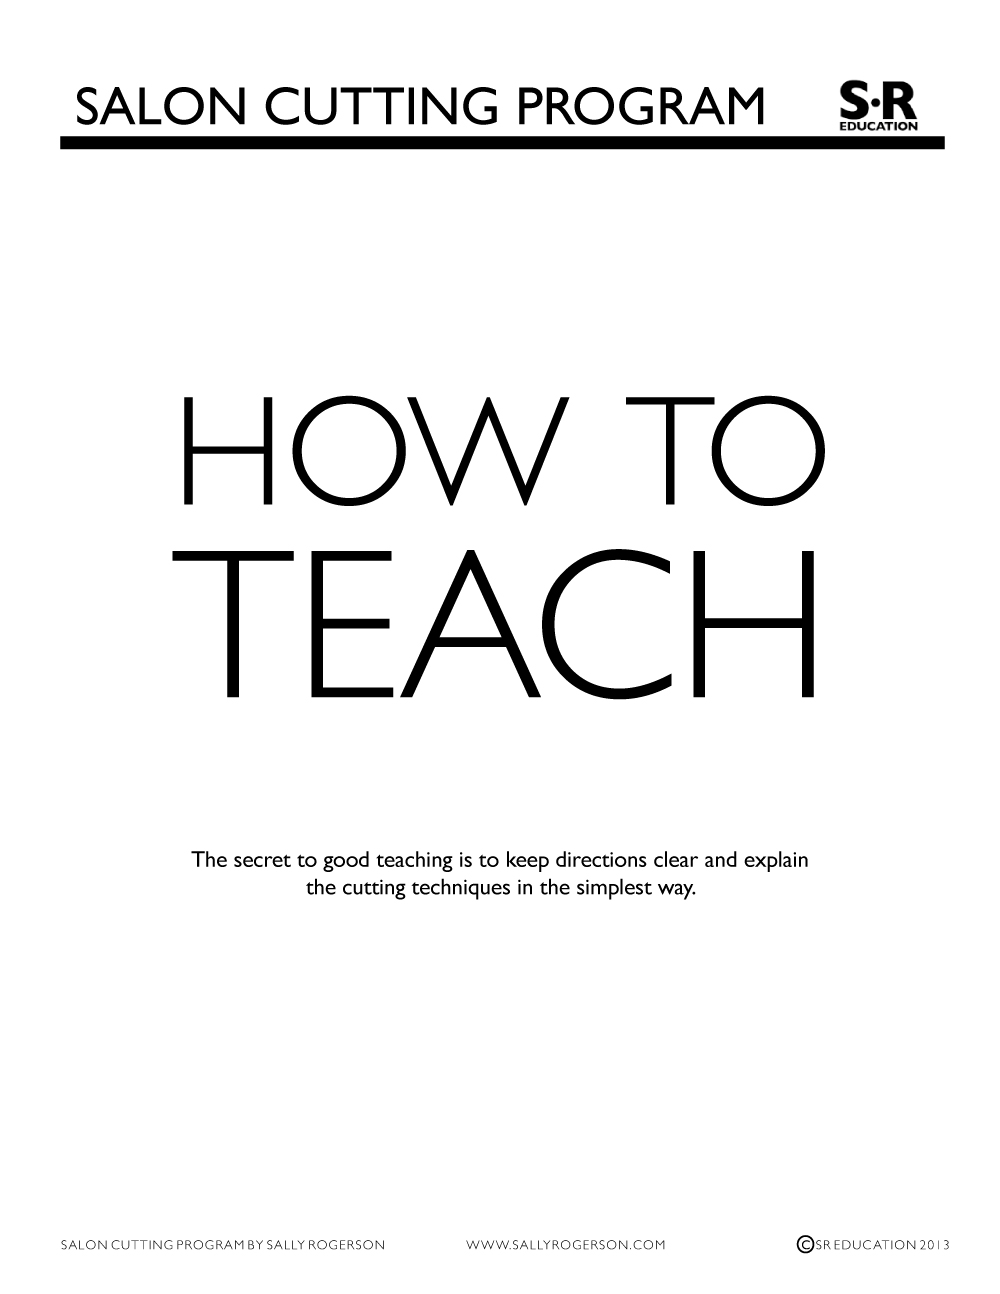 How to TEACH-1.jpg